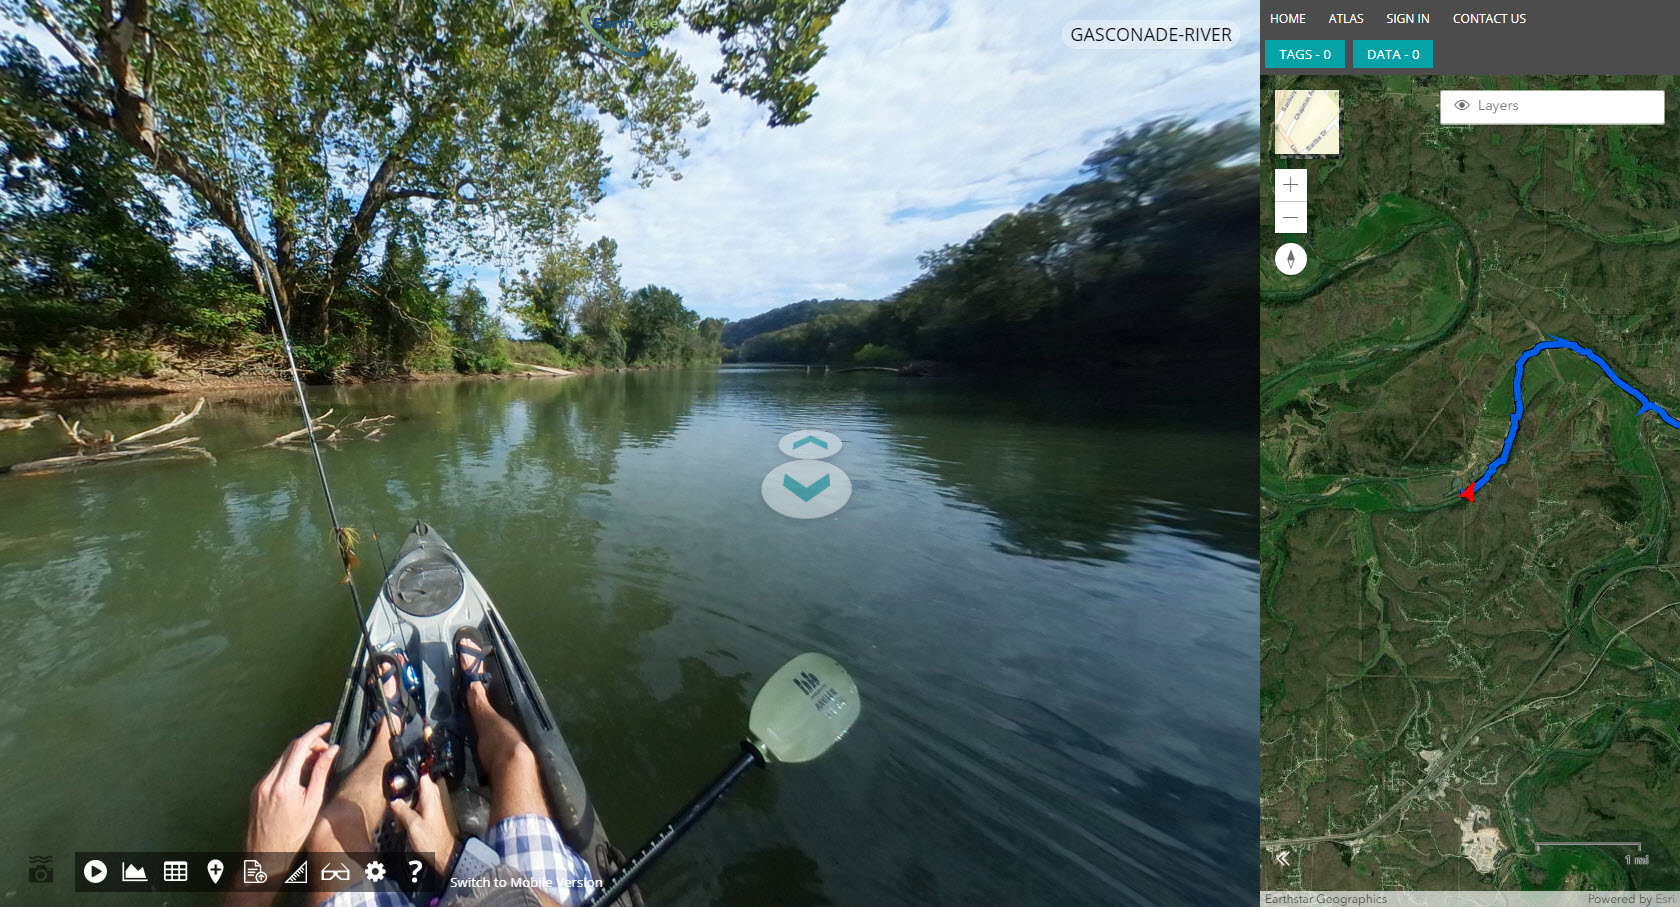 Kayaker crowdsourcing imagery for mapping project with EarthViews.